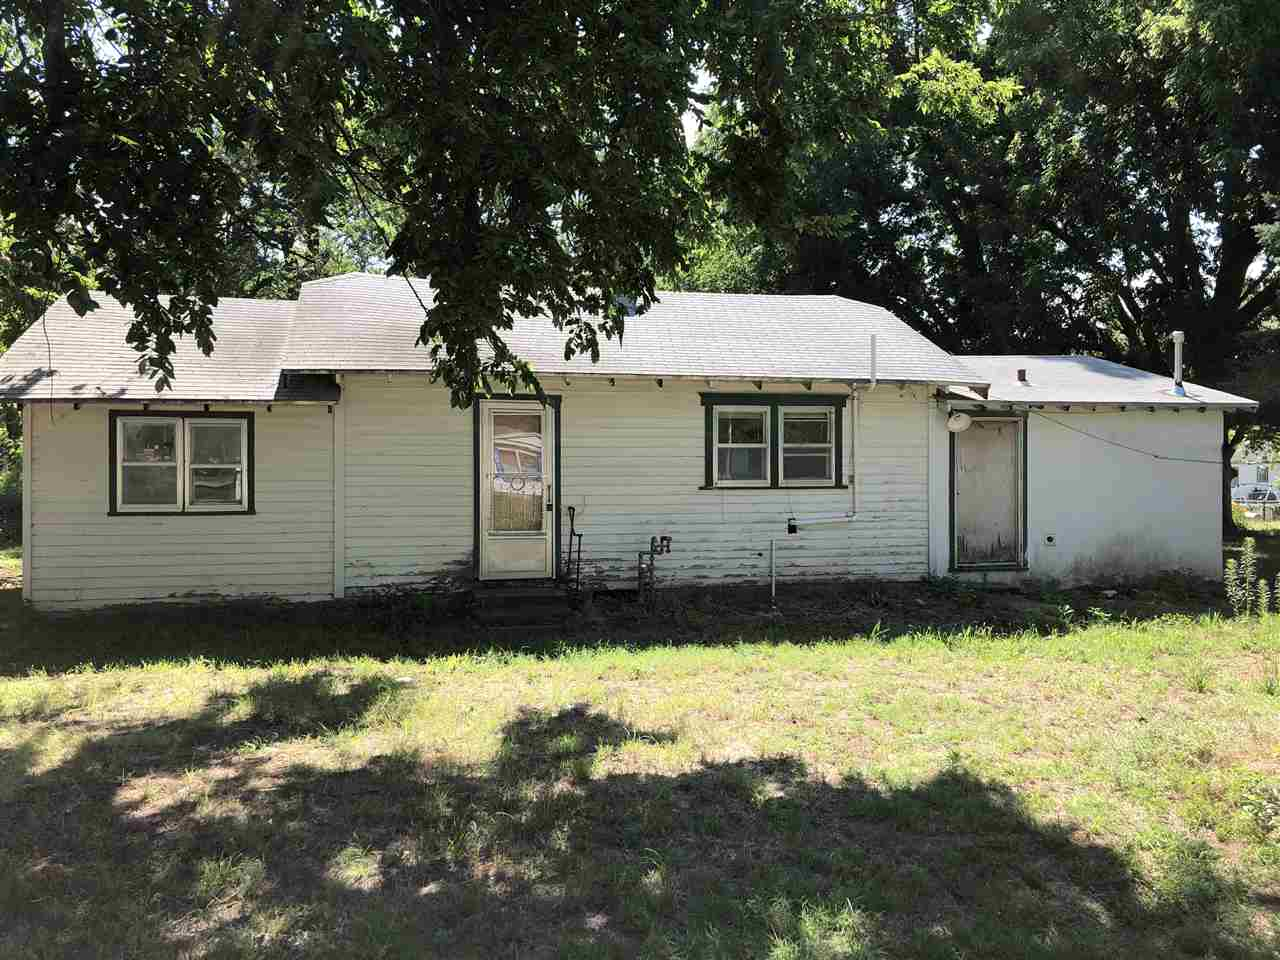 Lots of potential! With all of the plumbing updated and roughed in and a new hot water tank and a blank canvas for you to make your own improvements! Call today to schedule a showing.